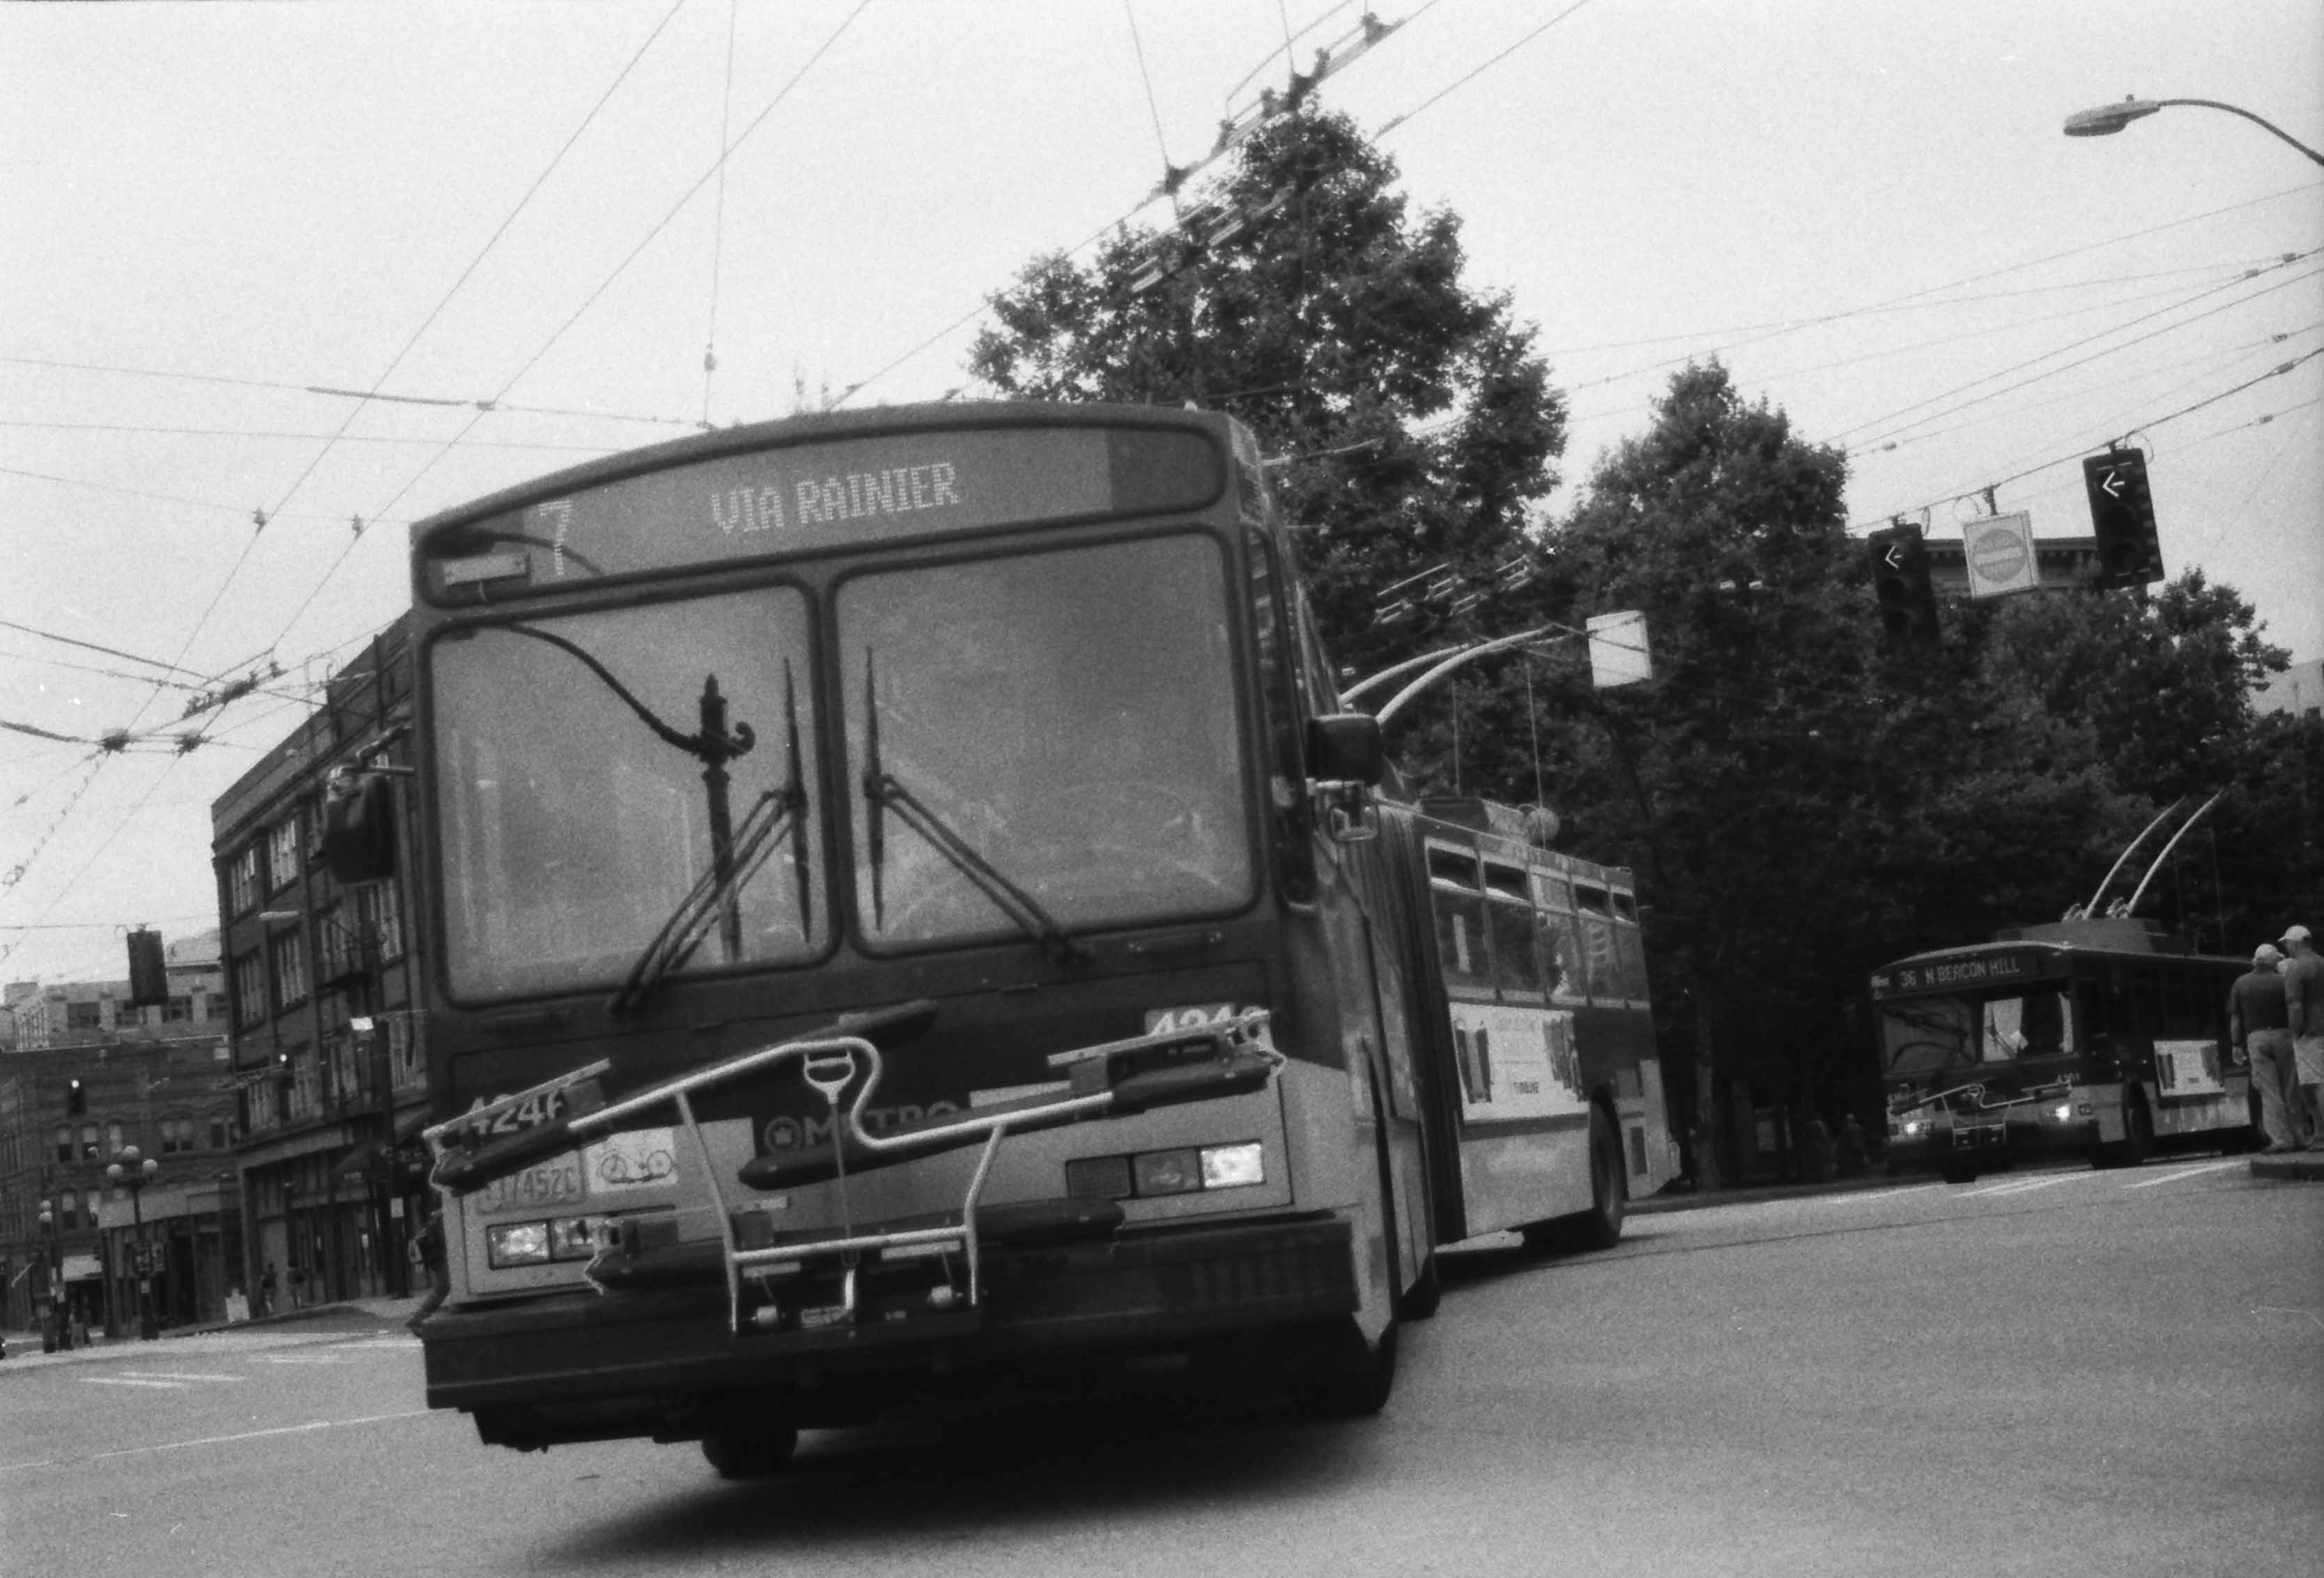 The trolley bus braked sharply, I could not resist and fell. As a result, the arm is broken. Where do i go for punishment 57